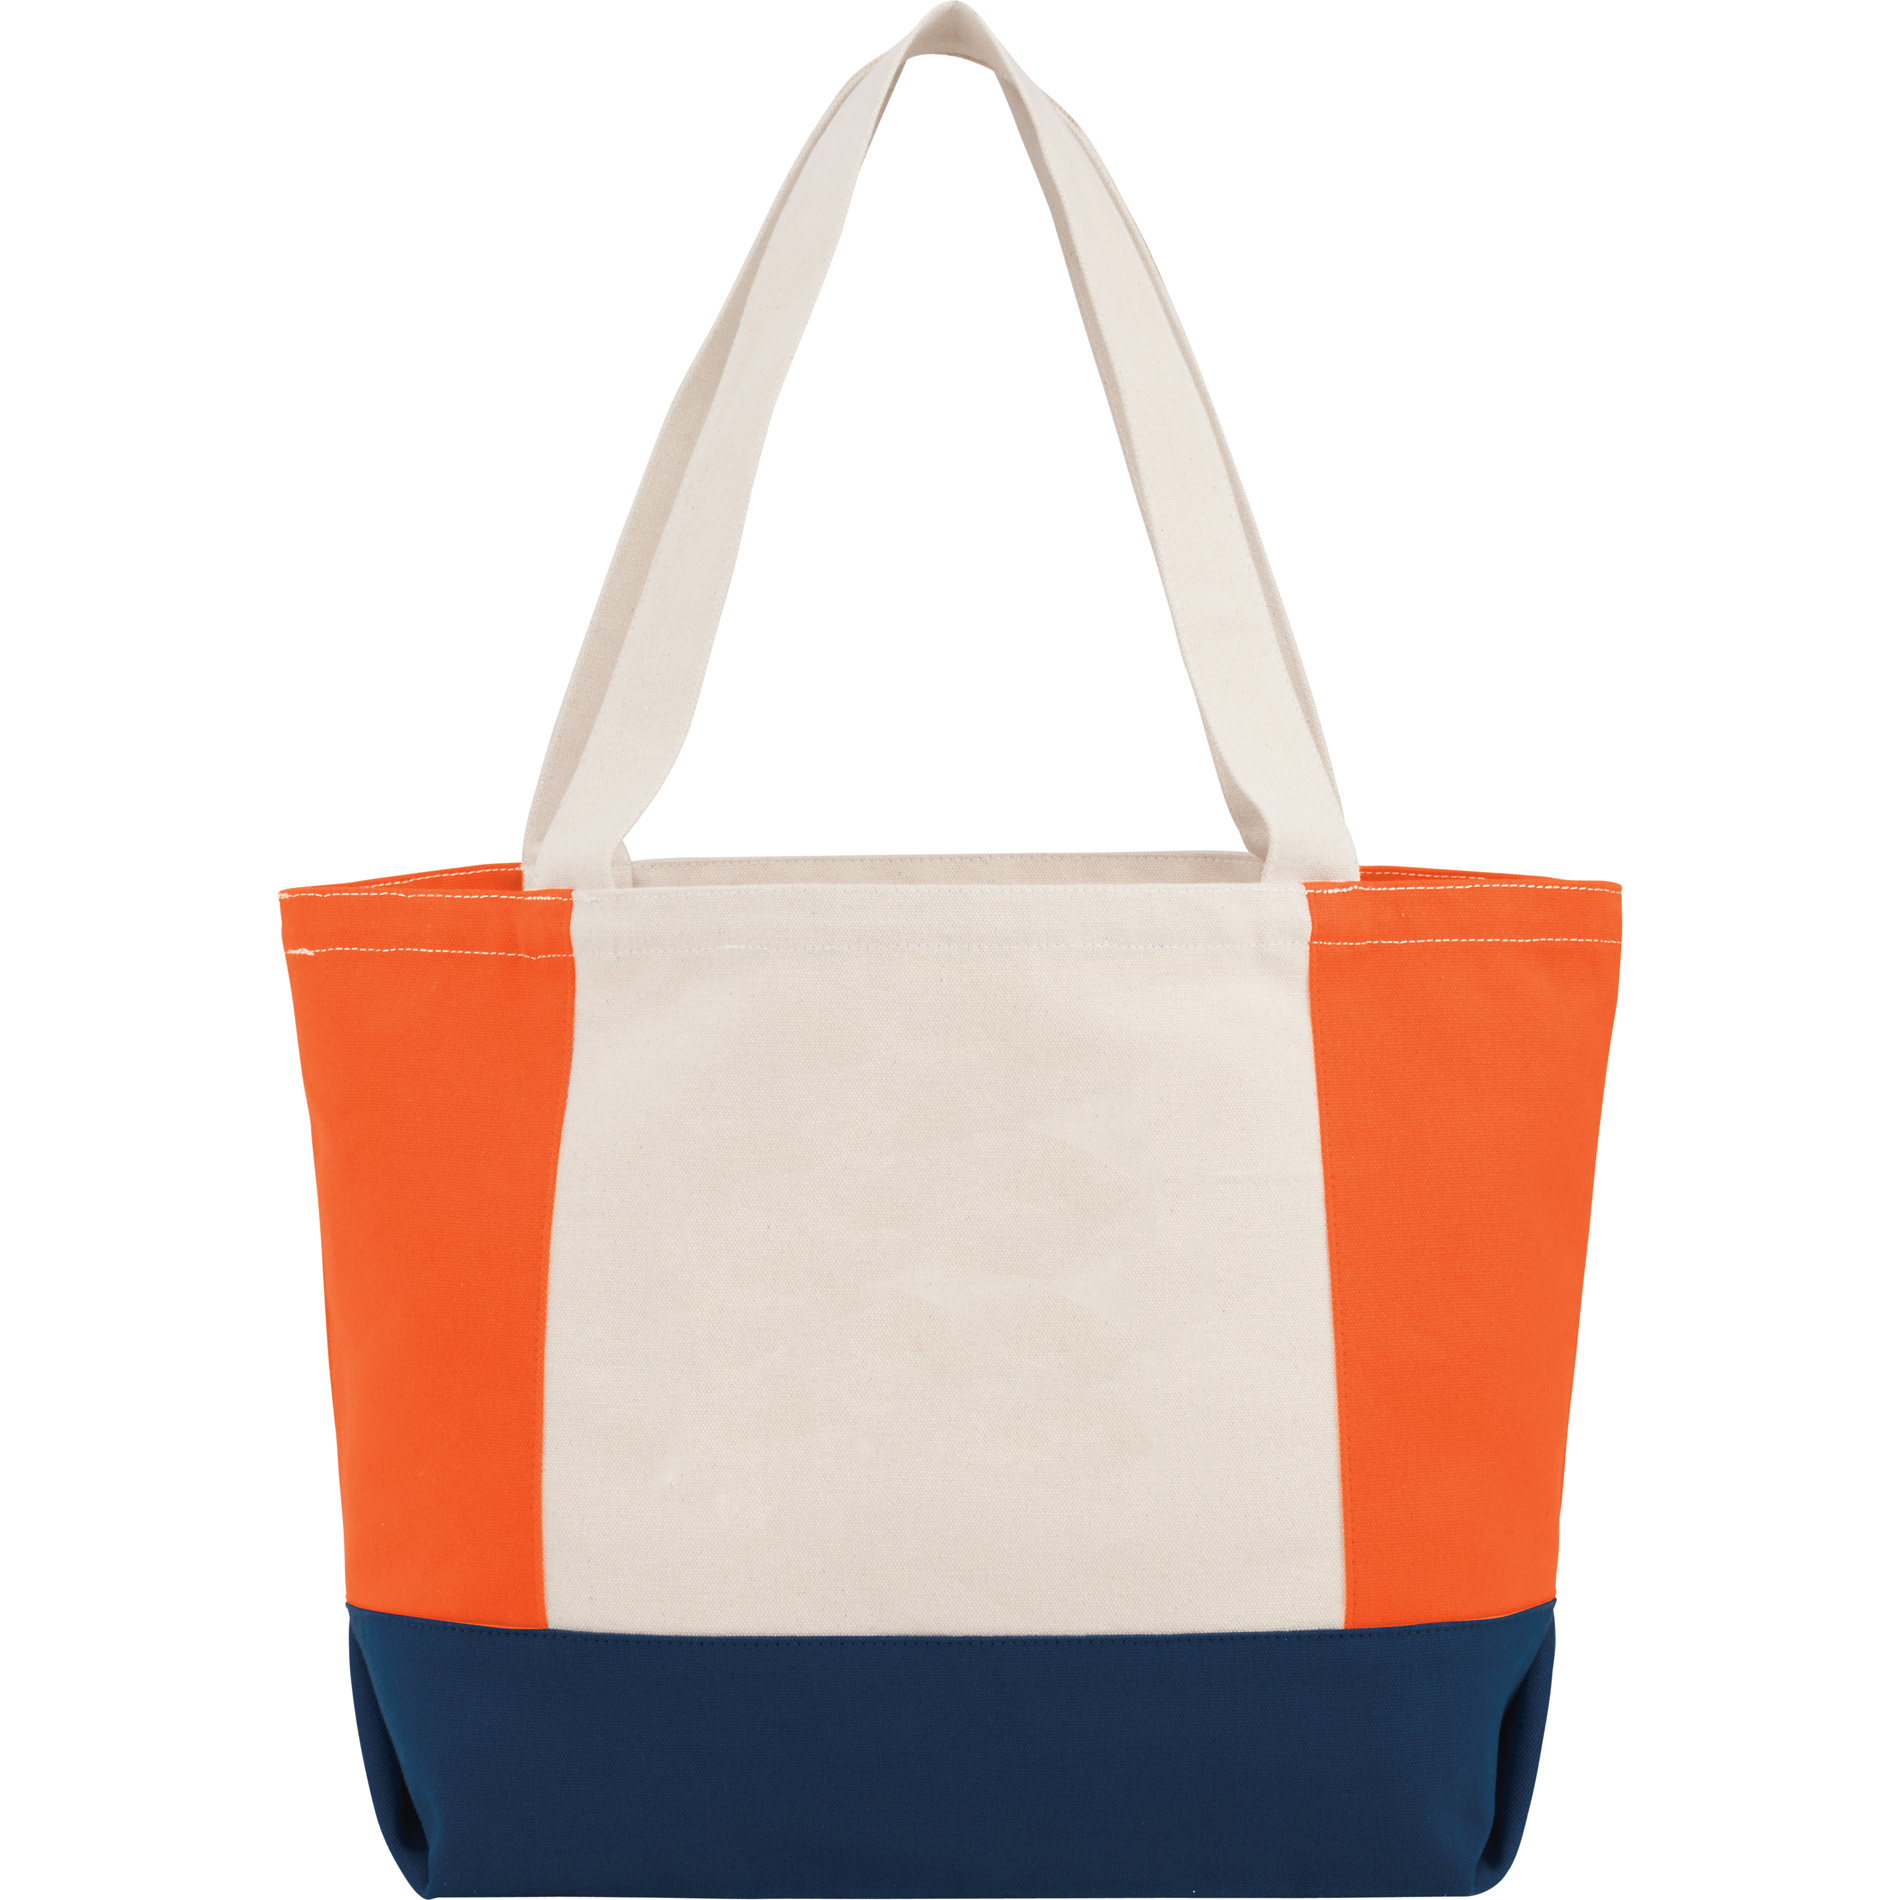 LEEDS 7900-13 - Nantucket 16oz Cotton Canvas Boat Tote